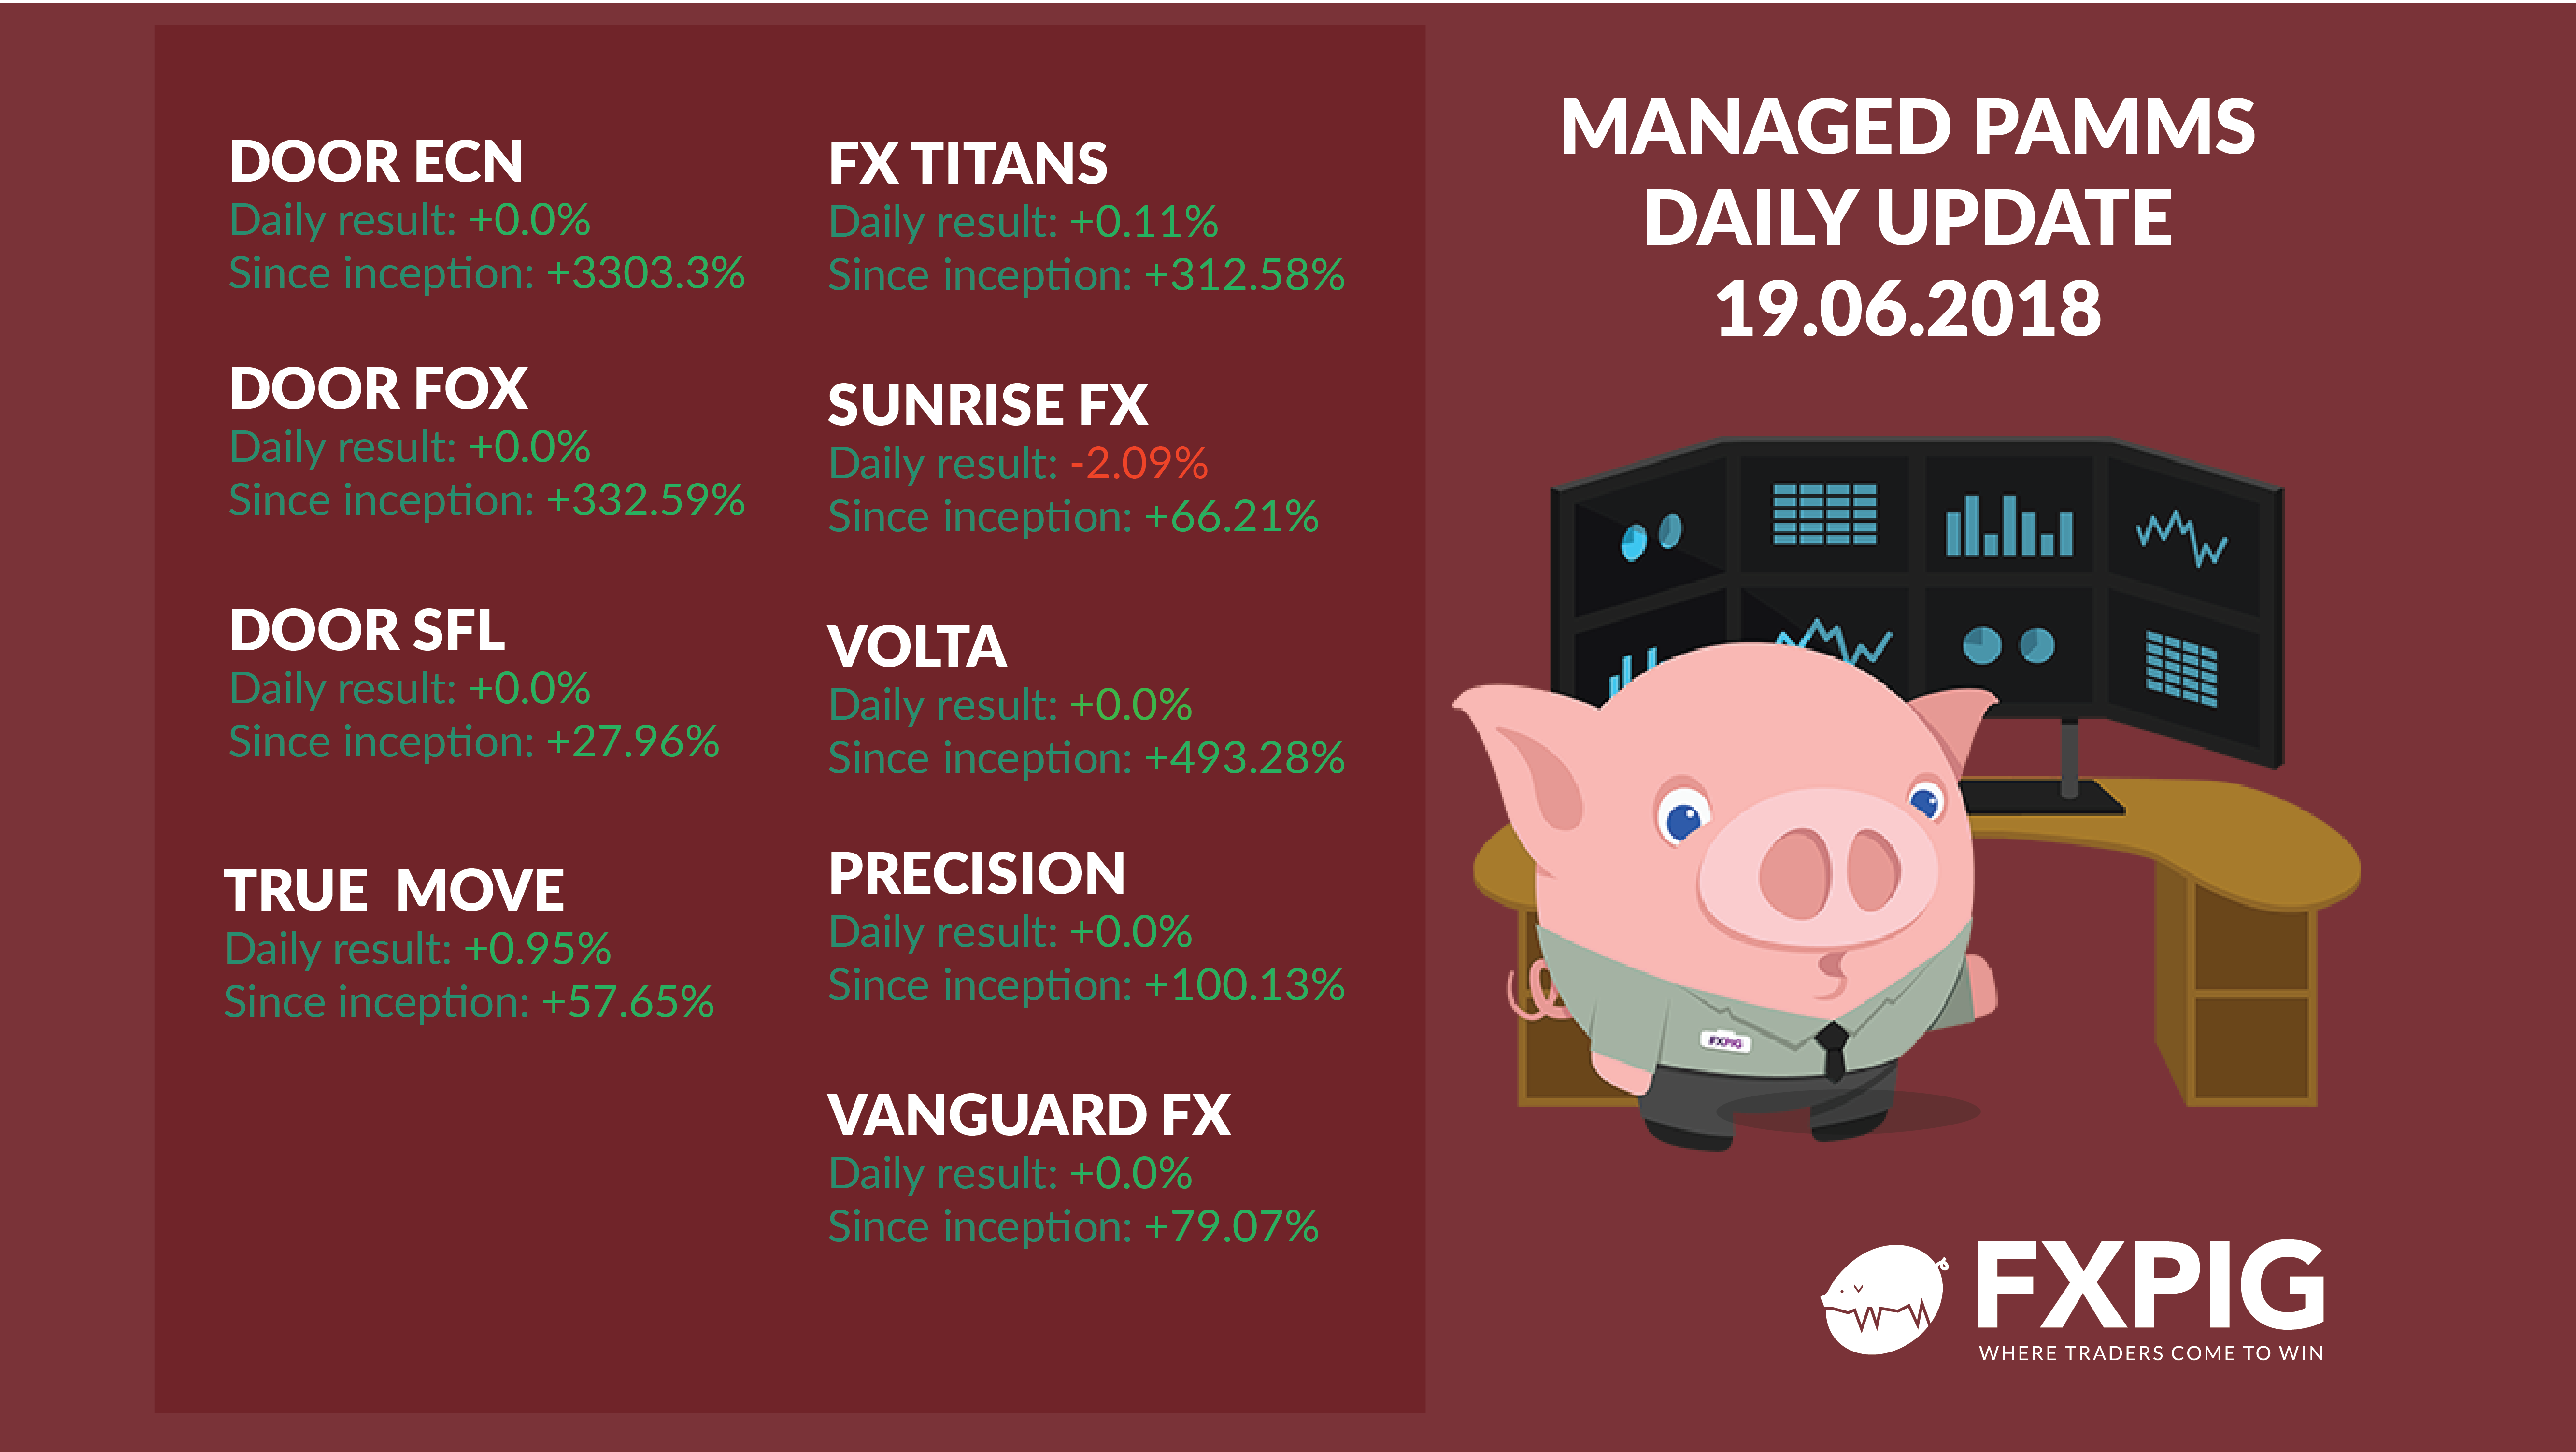 FOREX_managed-daily-results1906_FXPIG